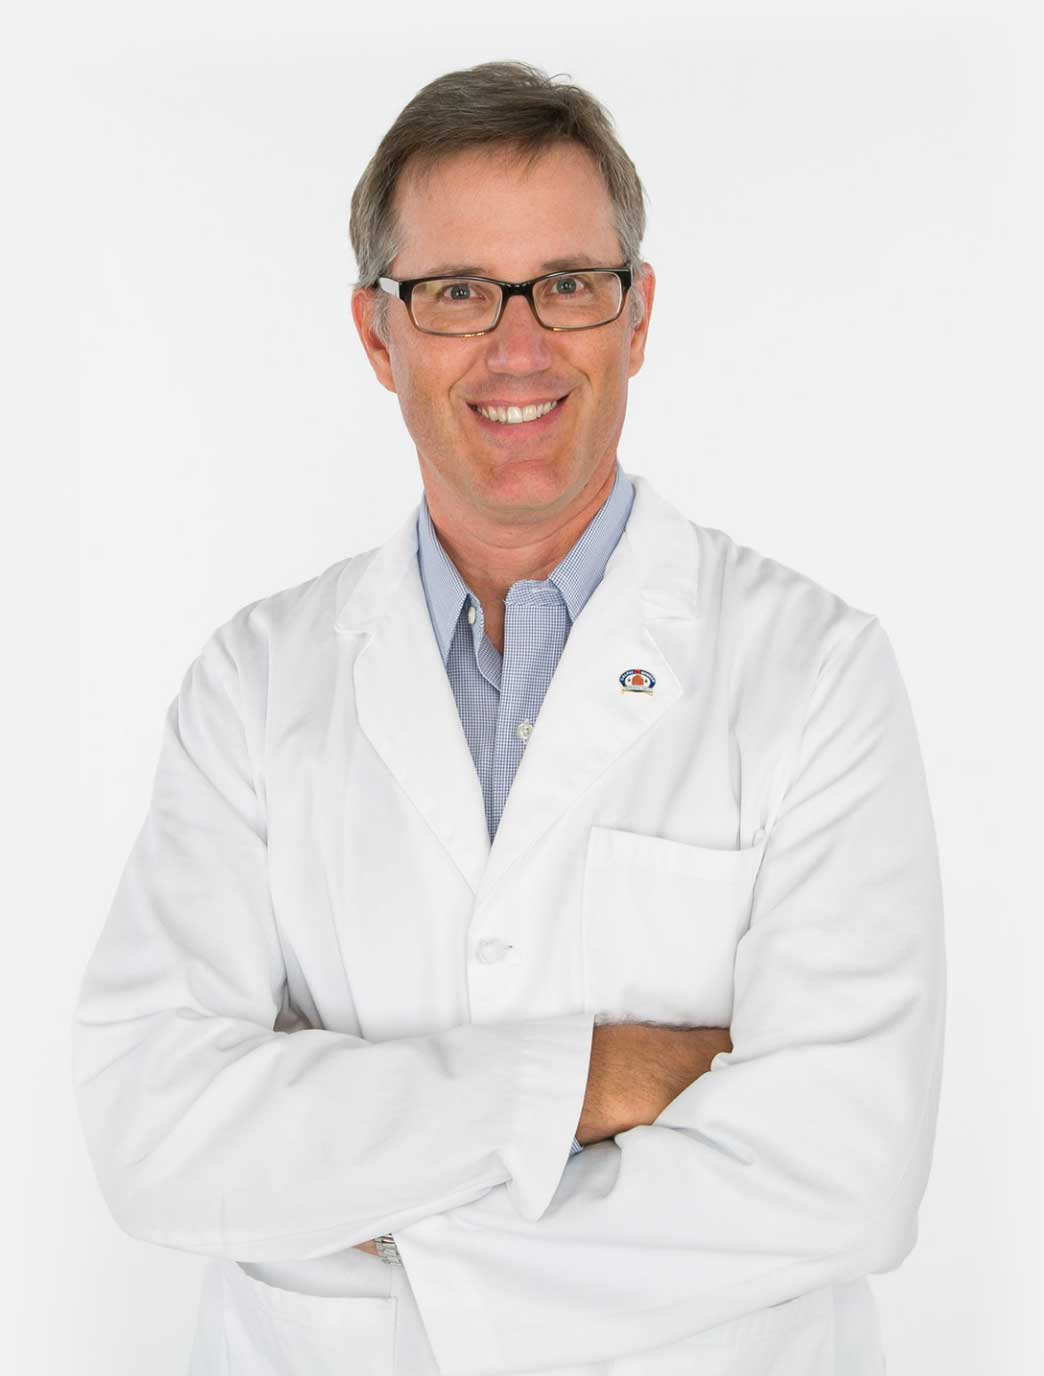 David-Oliak-MD-Los-Angeles-Orange-County-Weight-Loss-Surgeon